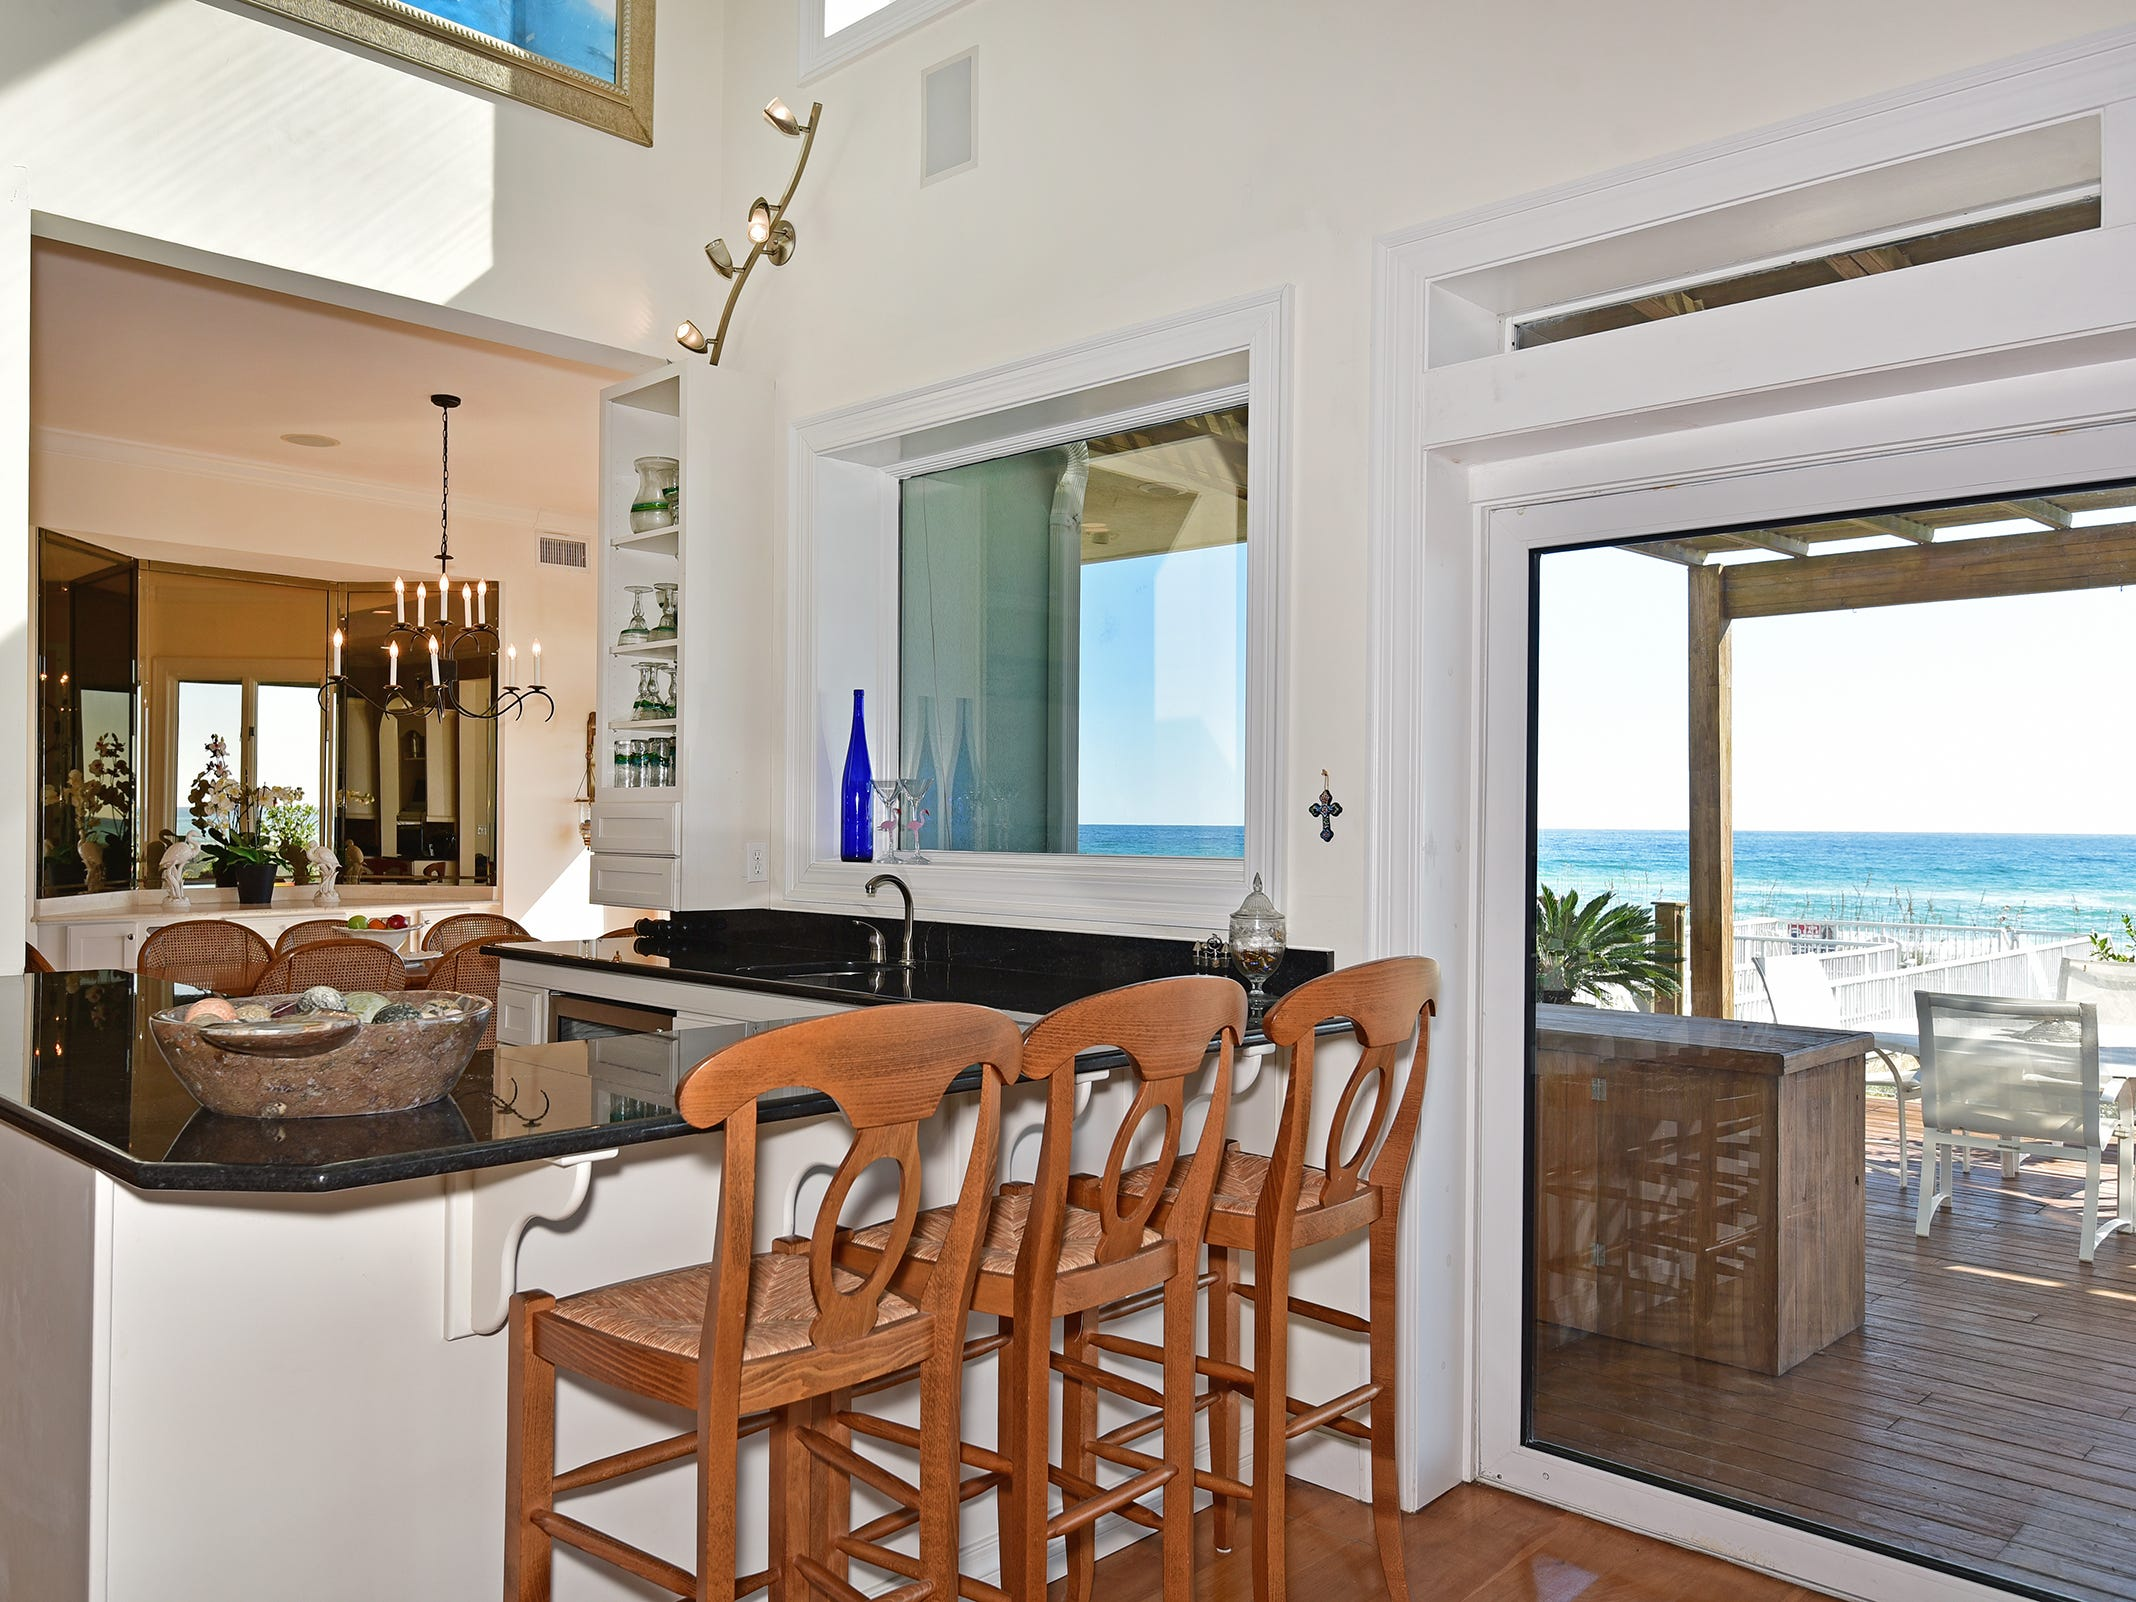 28 Calle HermosaThe wet bar is excellent for entertaining.